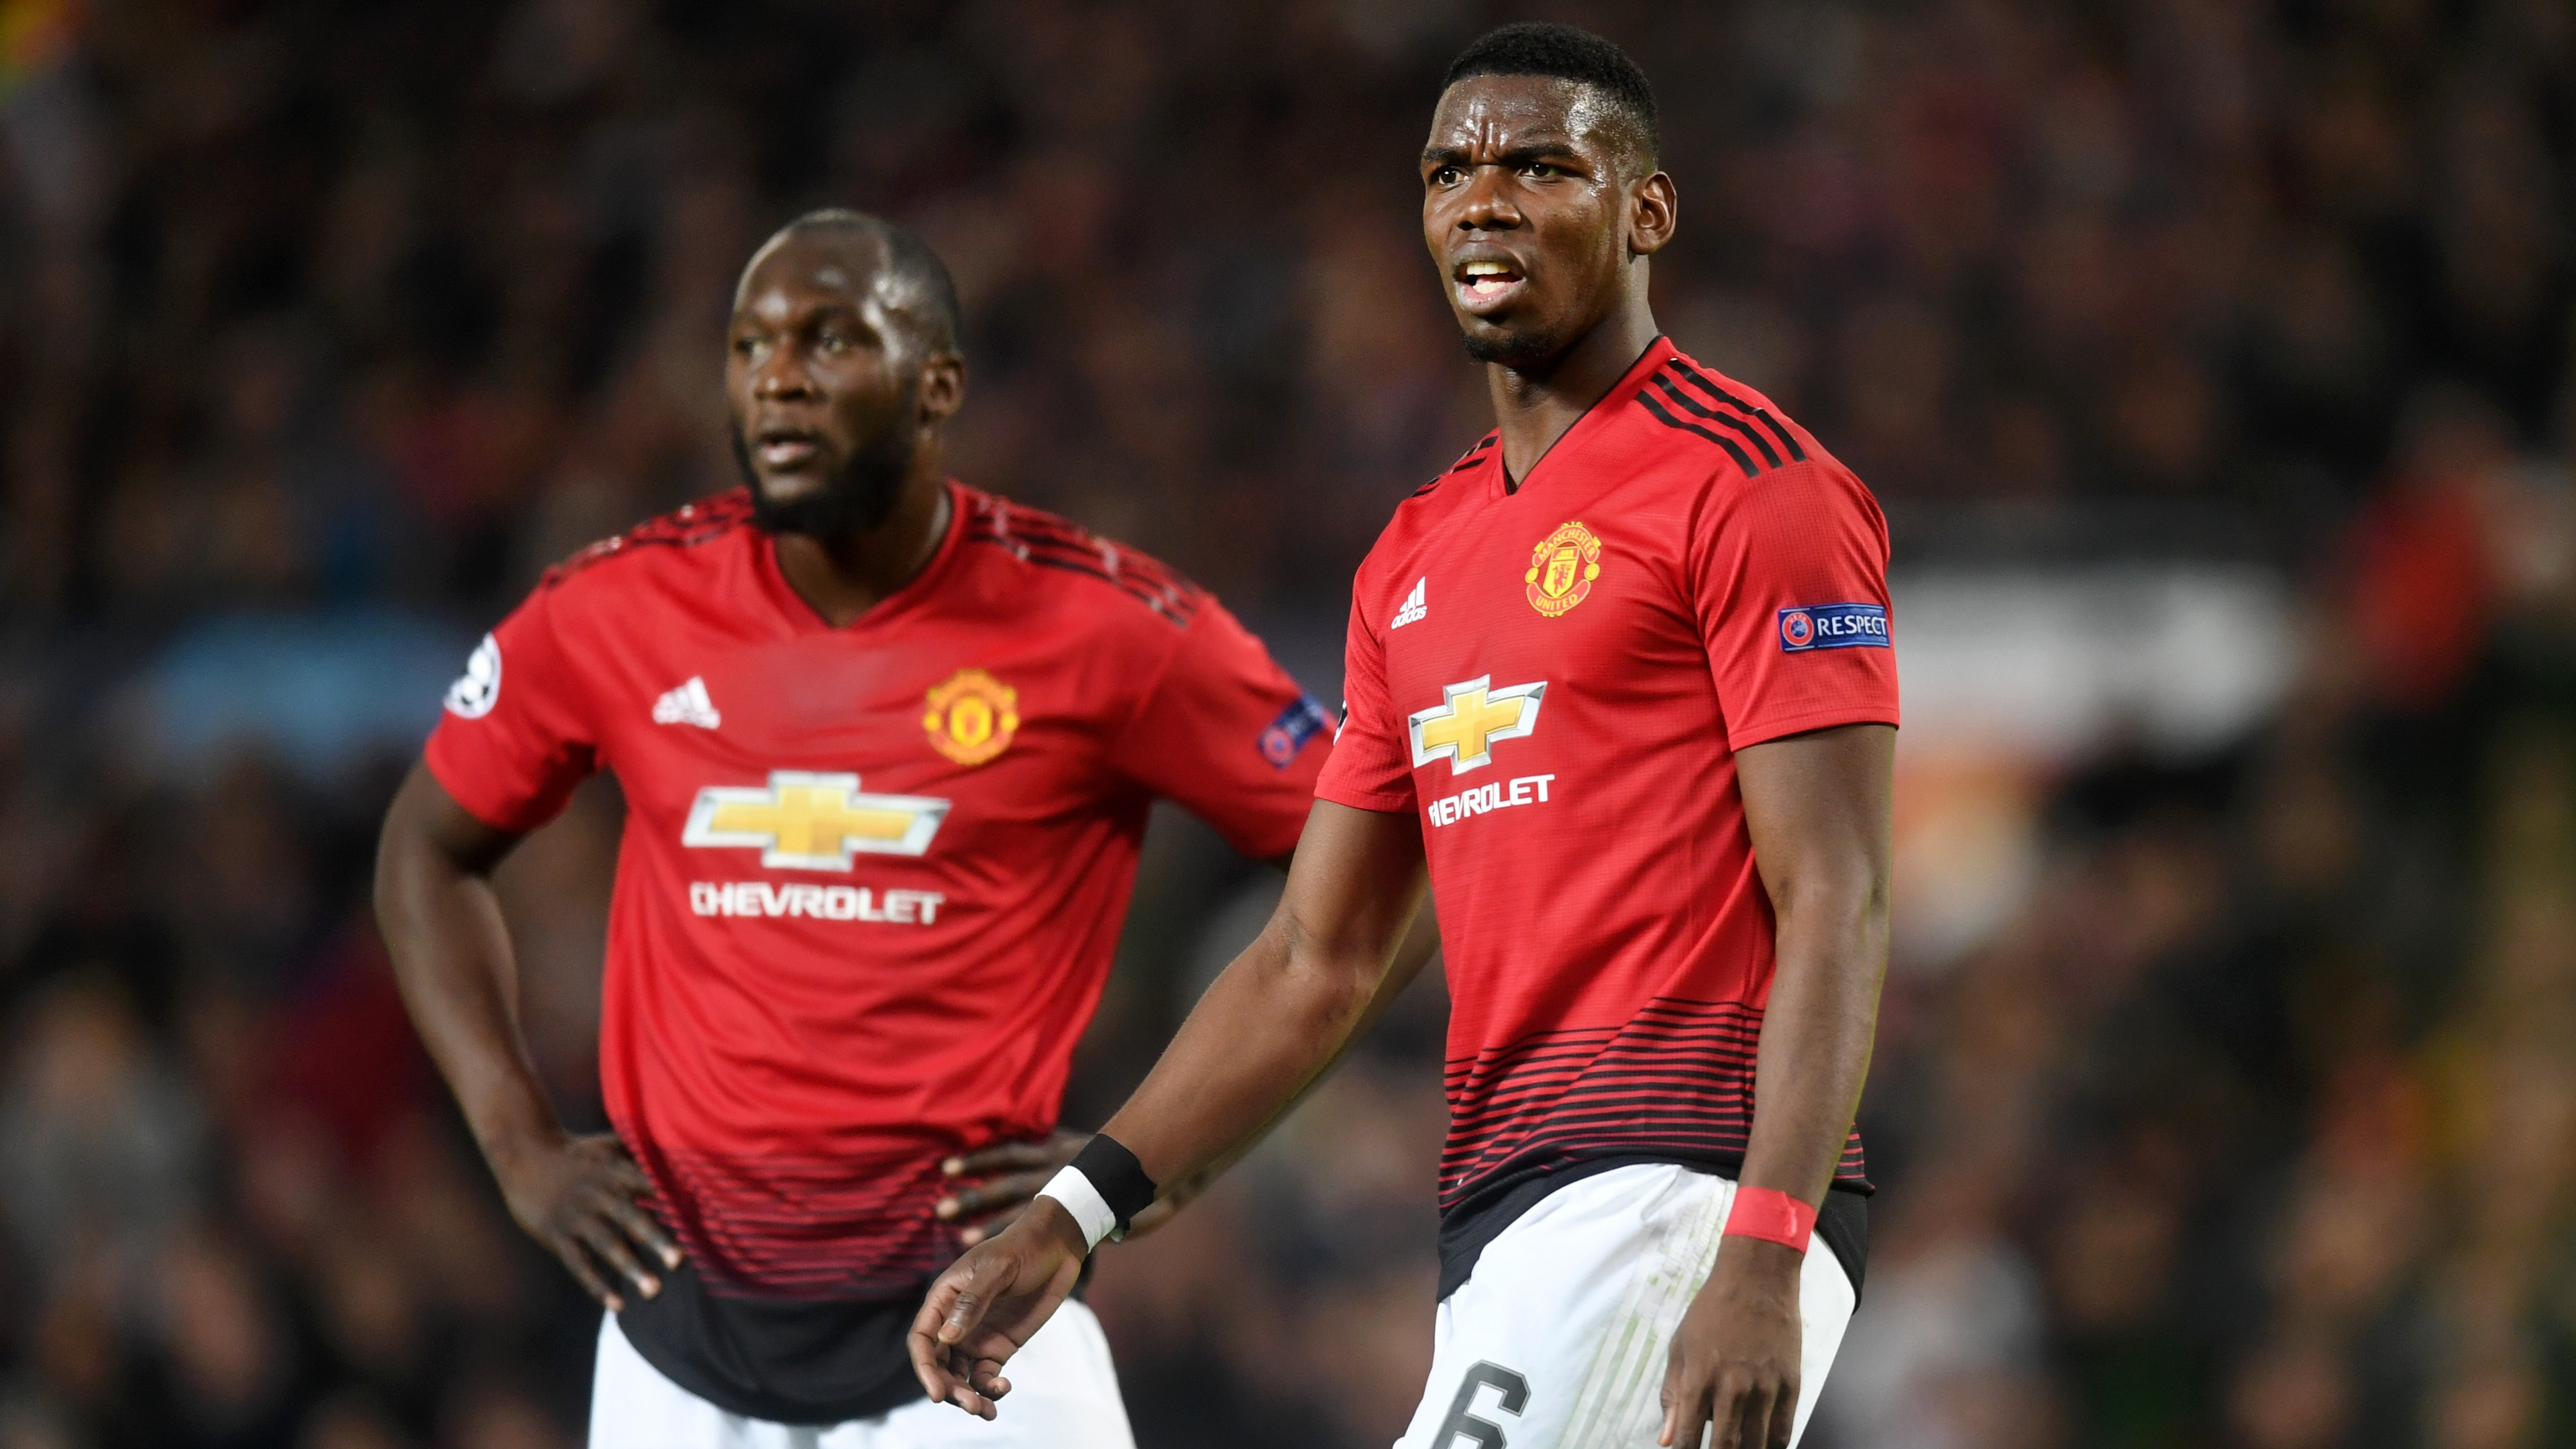 Manchester United fall behind Real Madrid, Barcelona in Forbes' most valuable teams list